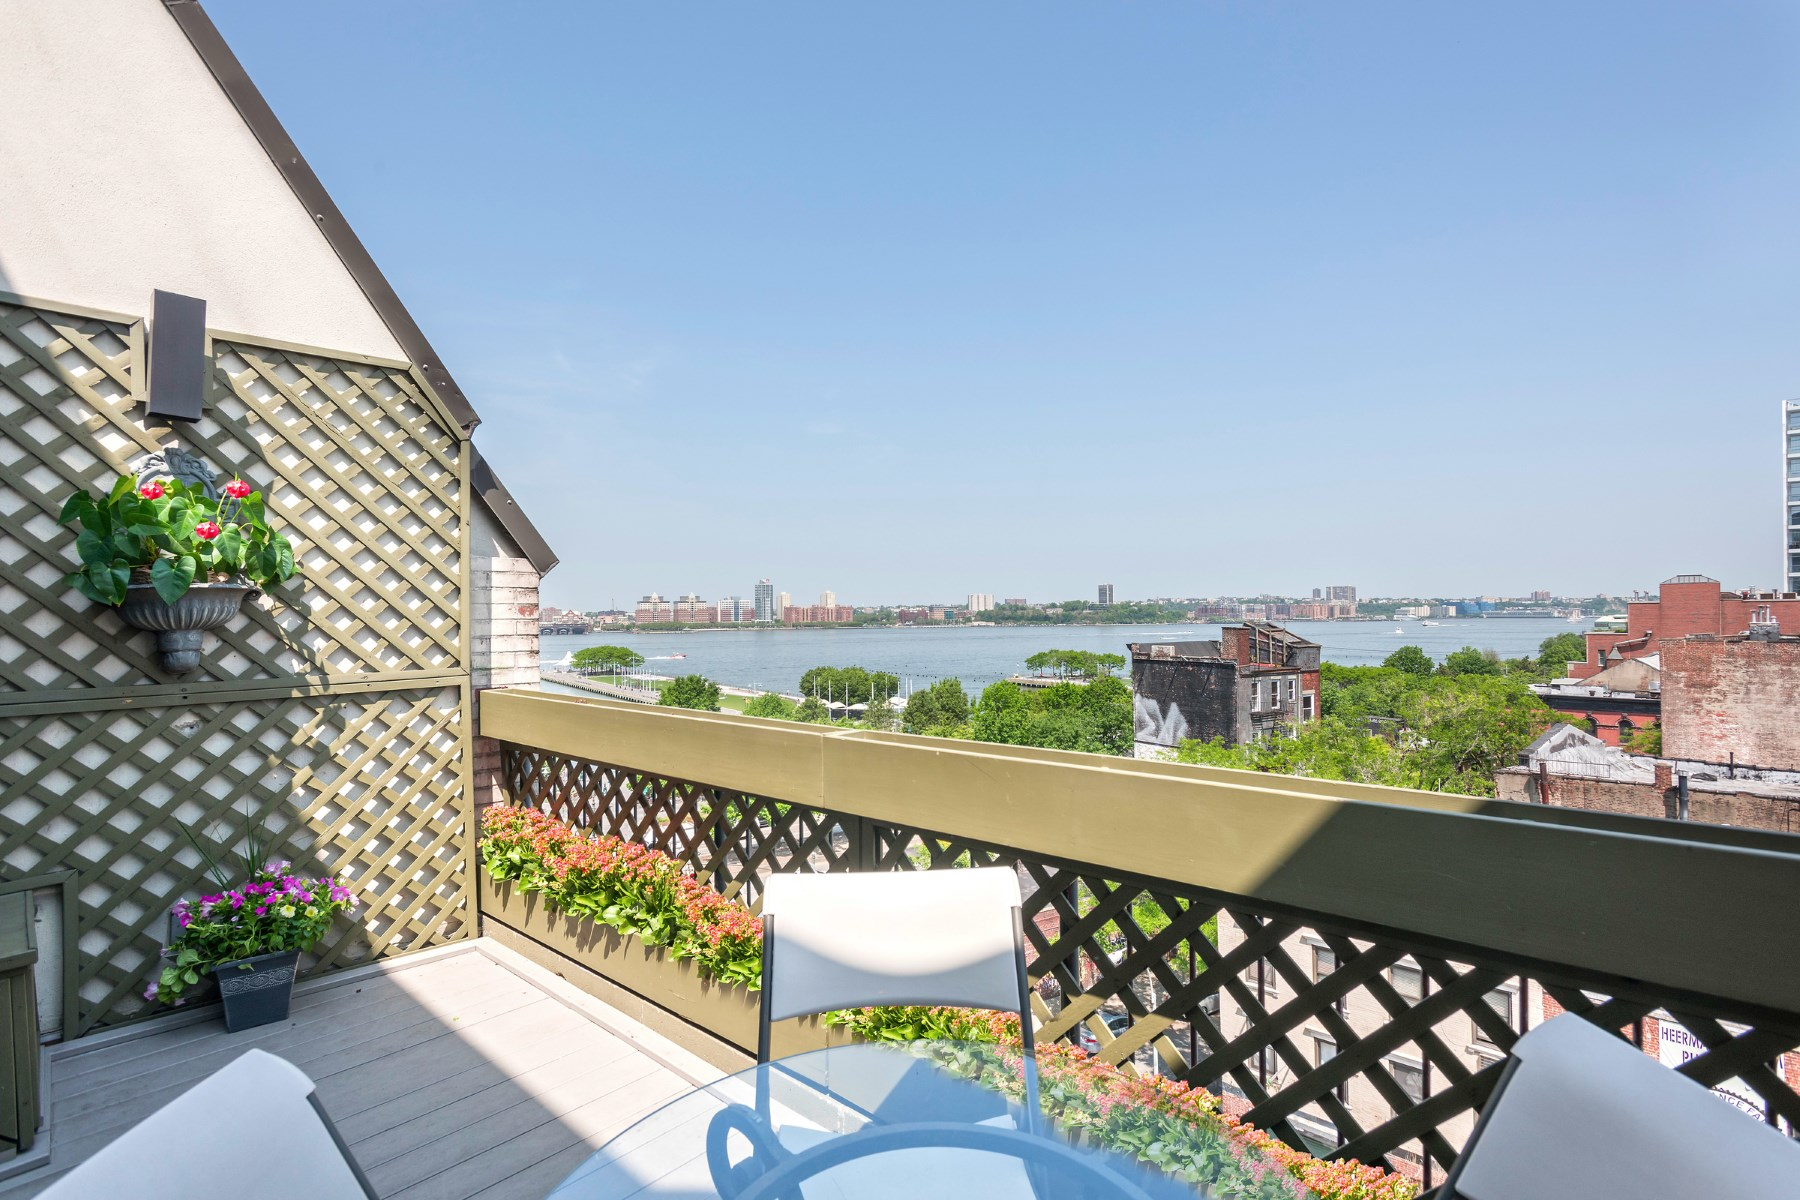 Appartement en copropriété pour l Vente à Feel Good PH with Terrace in W Village 130 Barrow Street PH520 West Village, New York, New York, 10014 États-Unis